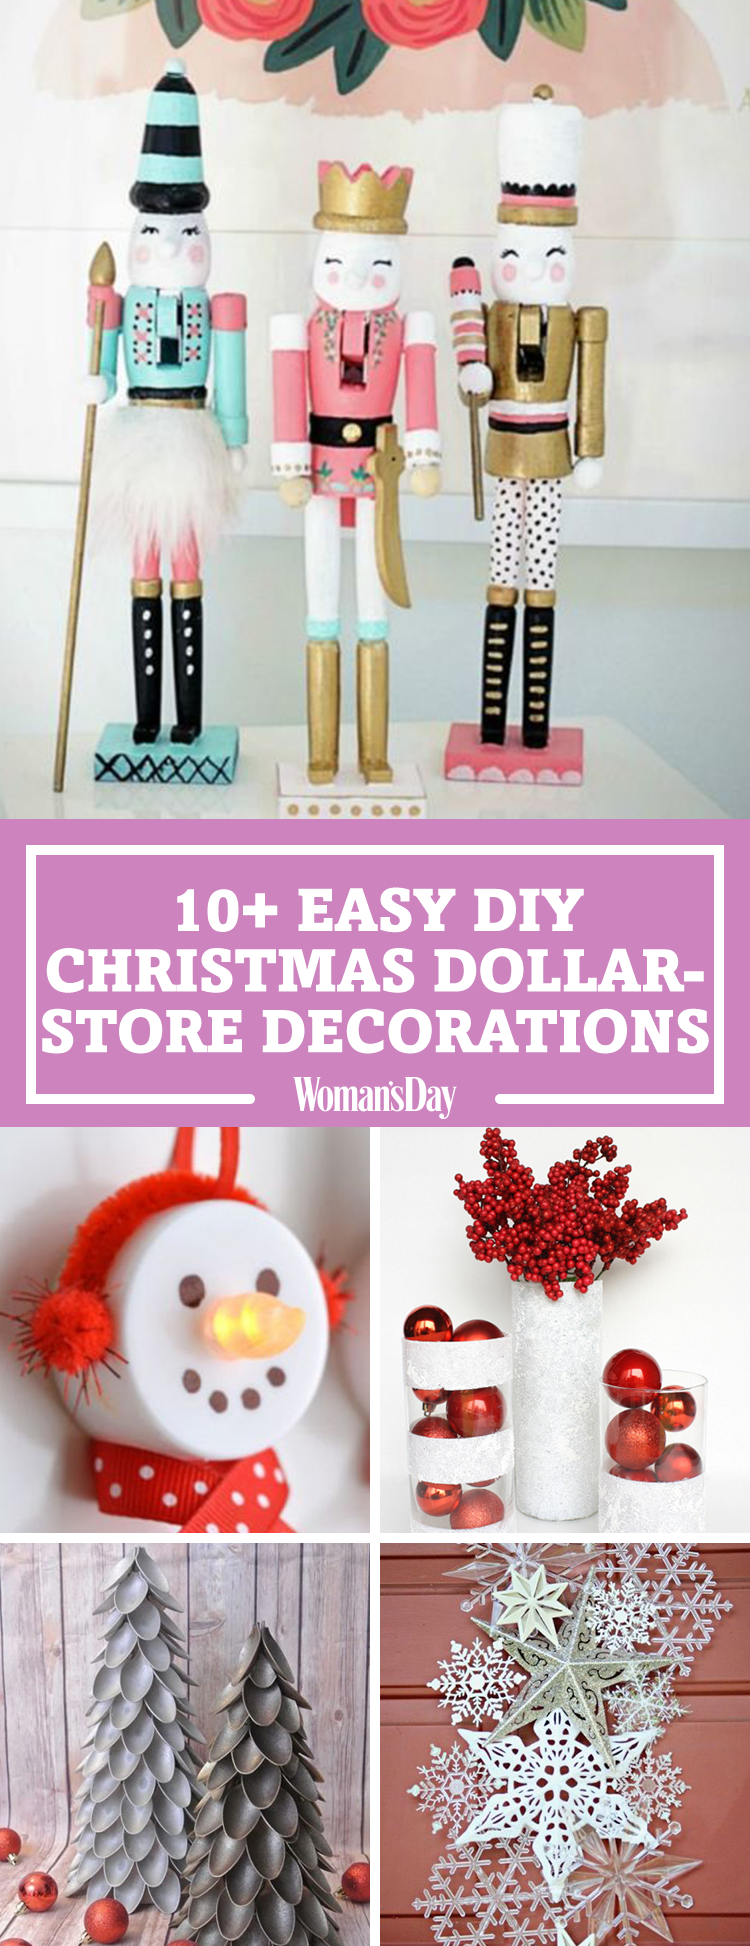 Dollar Store Christmas Decorations Christmas Decor From The Dollar Store,Mid Century Modern King Bedroom Set